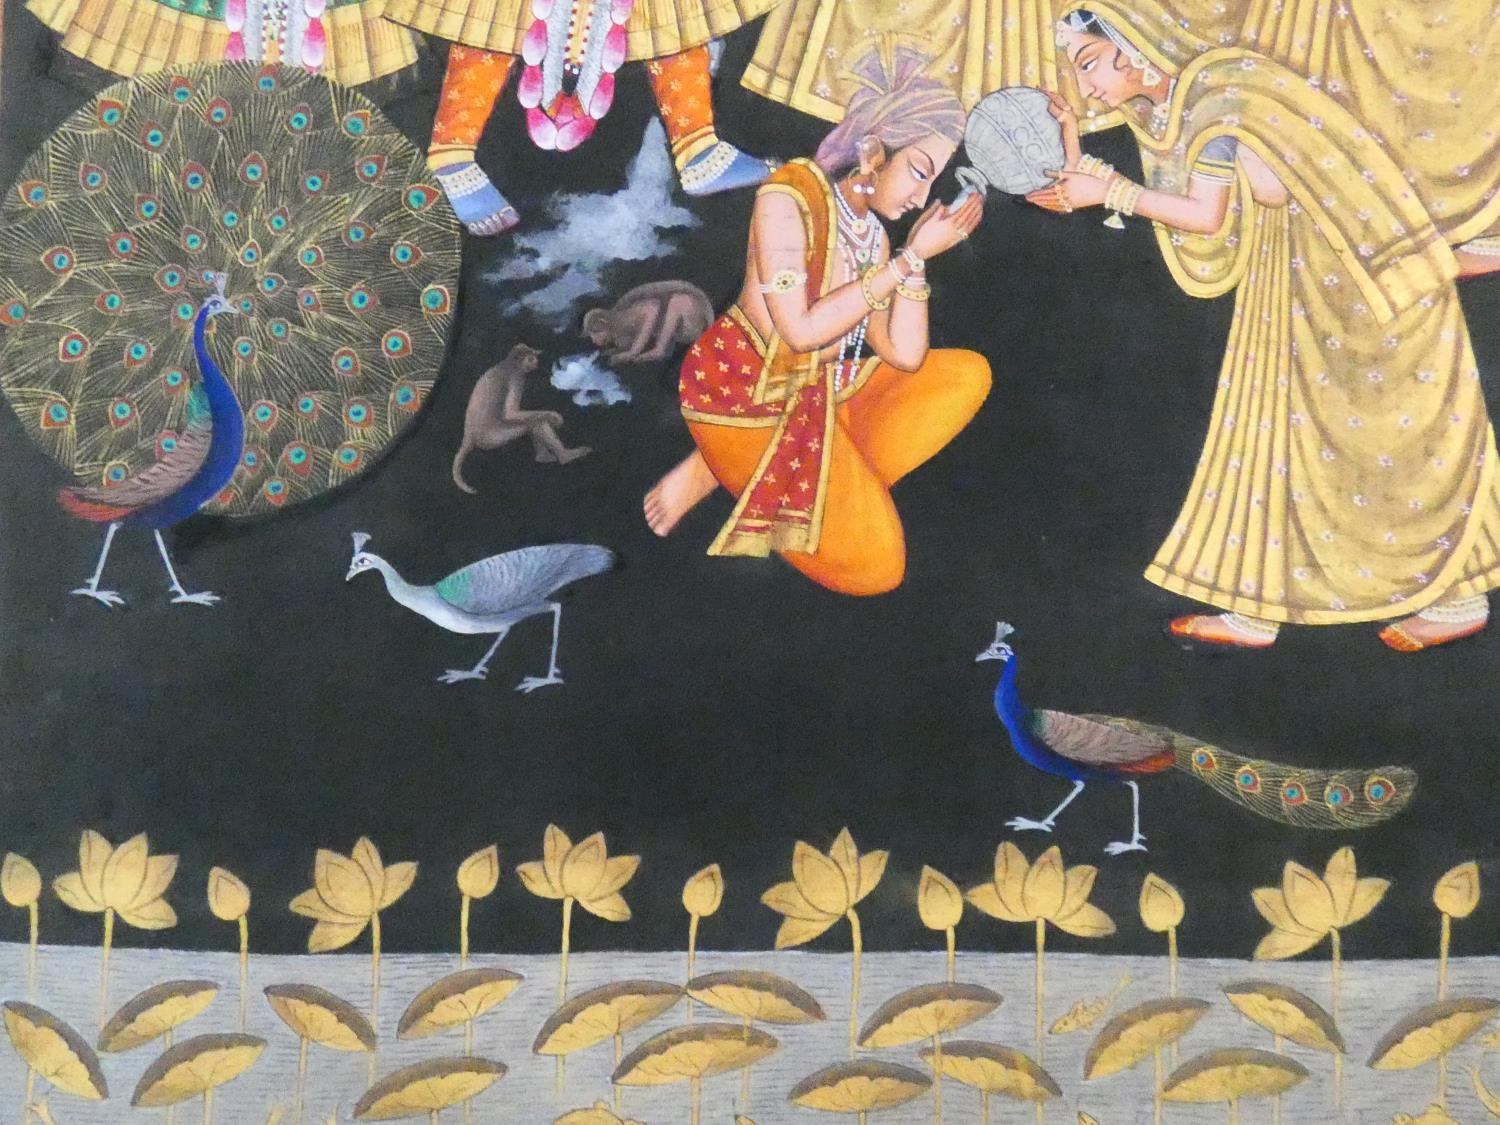 A large framed Indo-Persian gilded silk painting of Krishna with females surrounding him, standing - Image 5 of 8